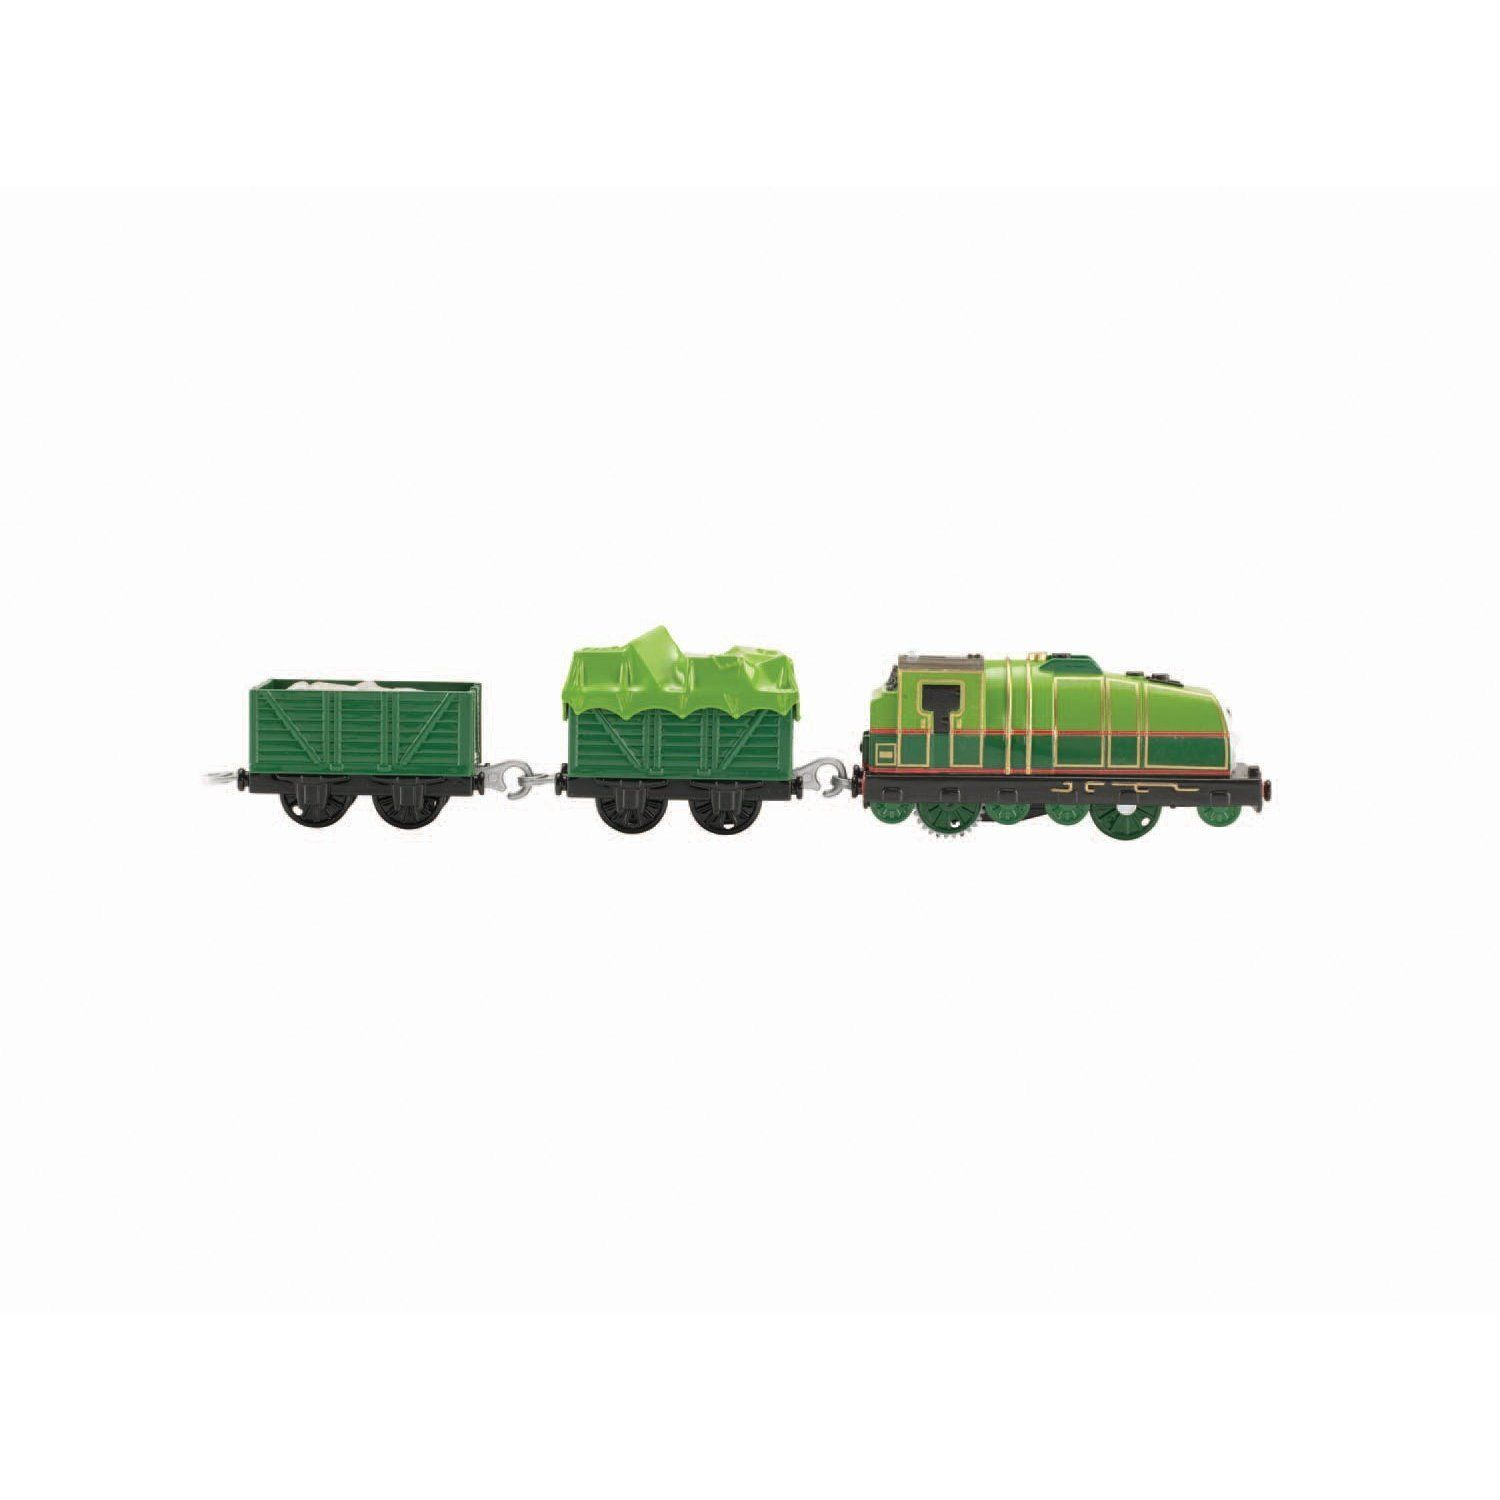 Fisher Price FPBDP06 Thomas The Train 'Tale of the Brave' TrackMaster Motorized Gator Engine